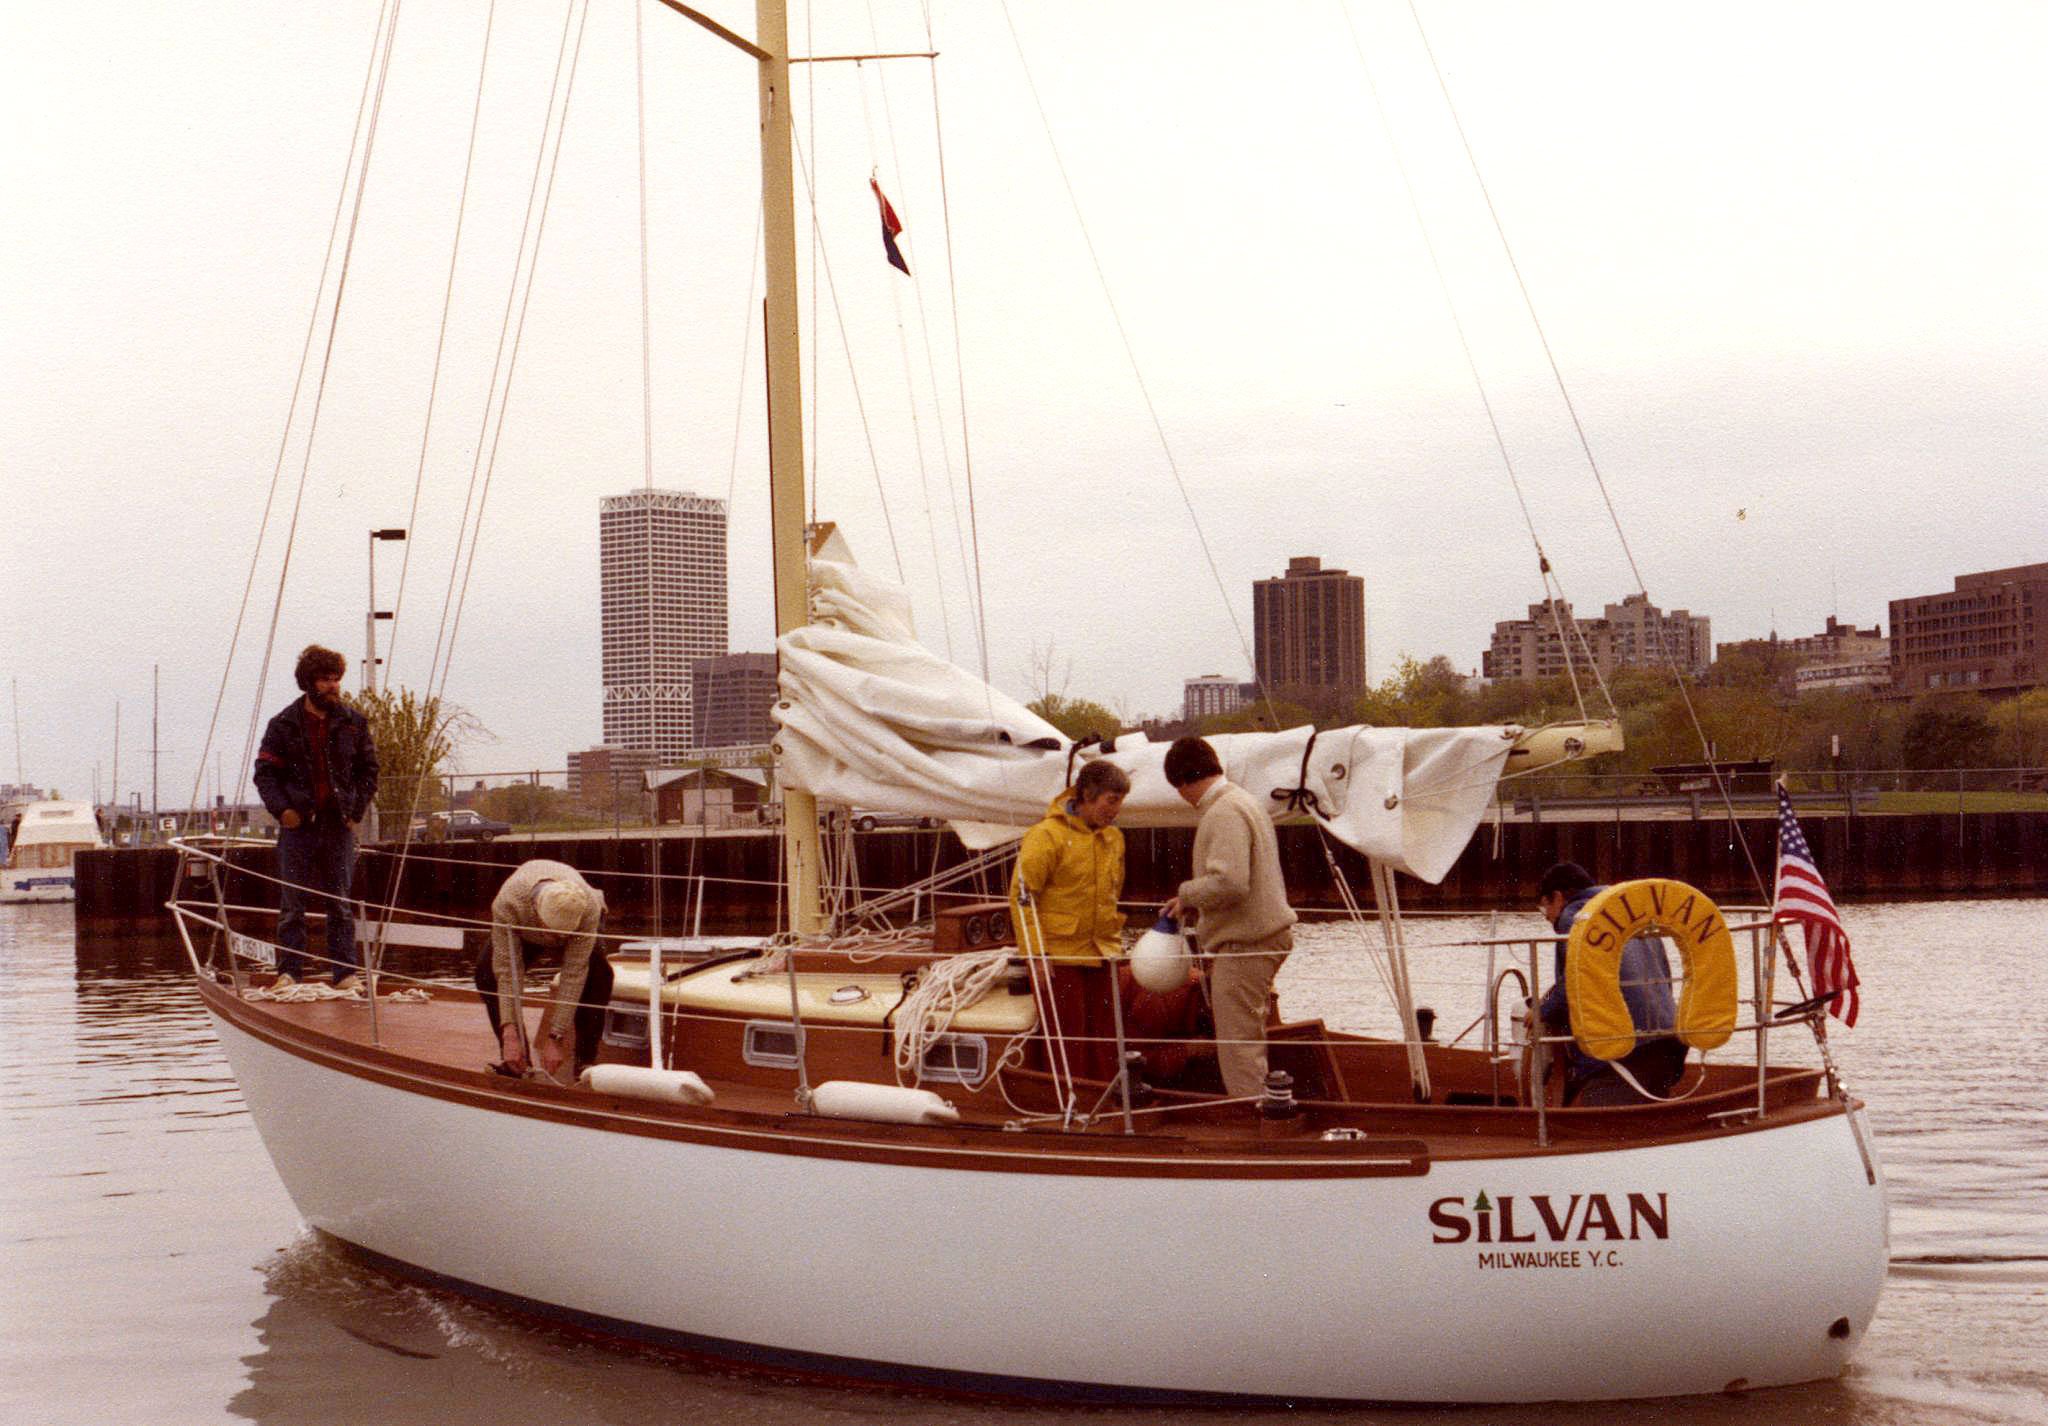 Silvan water test, first commission for Van Dam Custom Boats